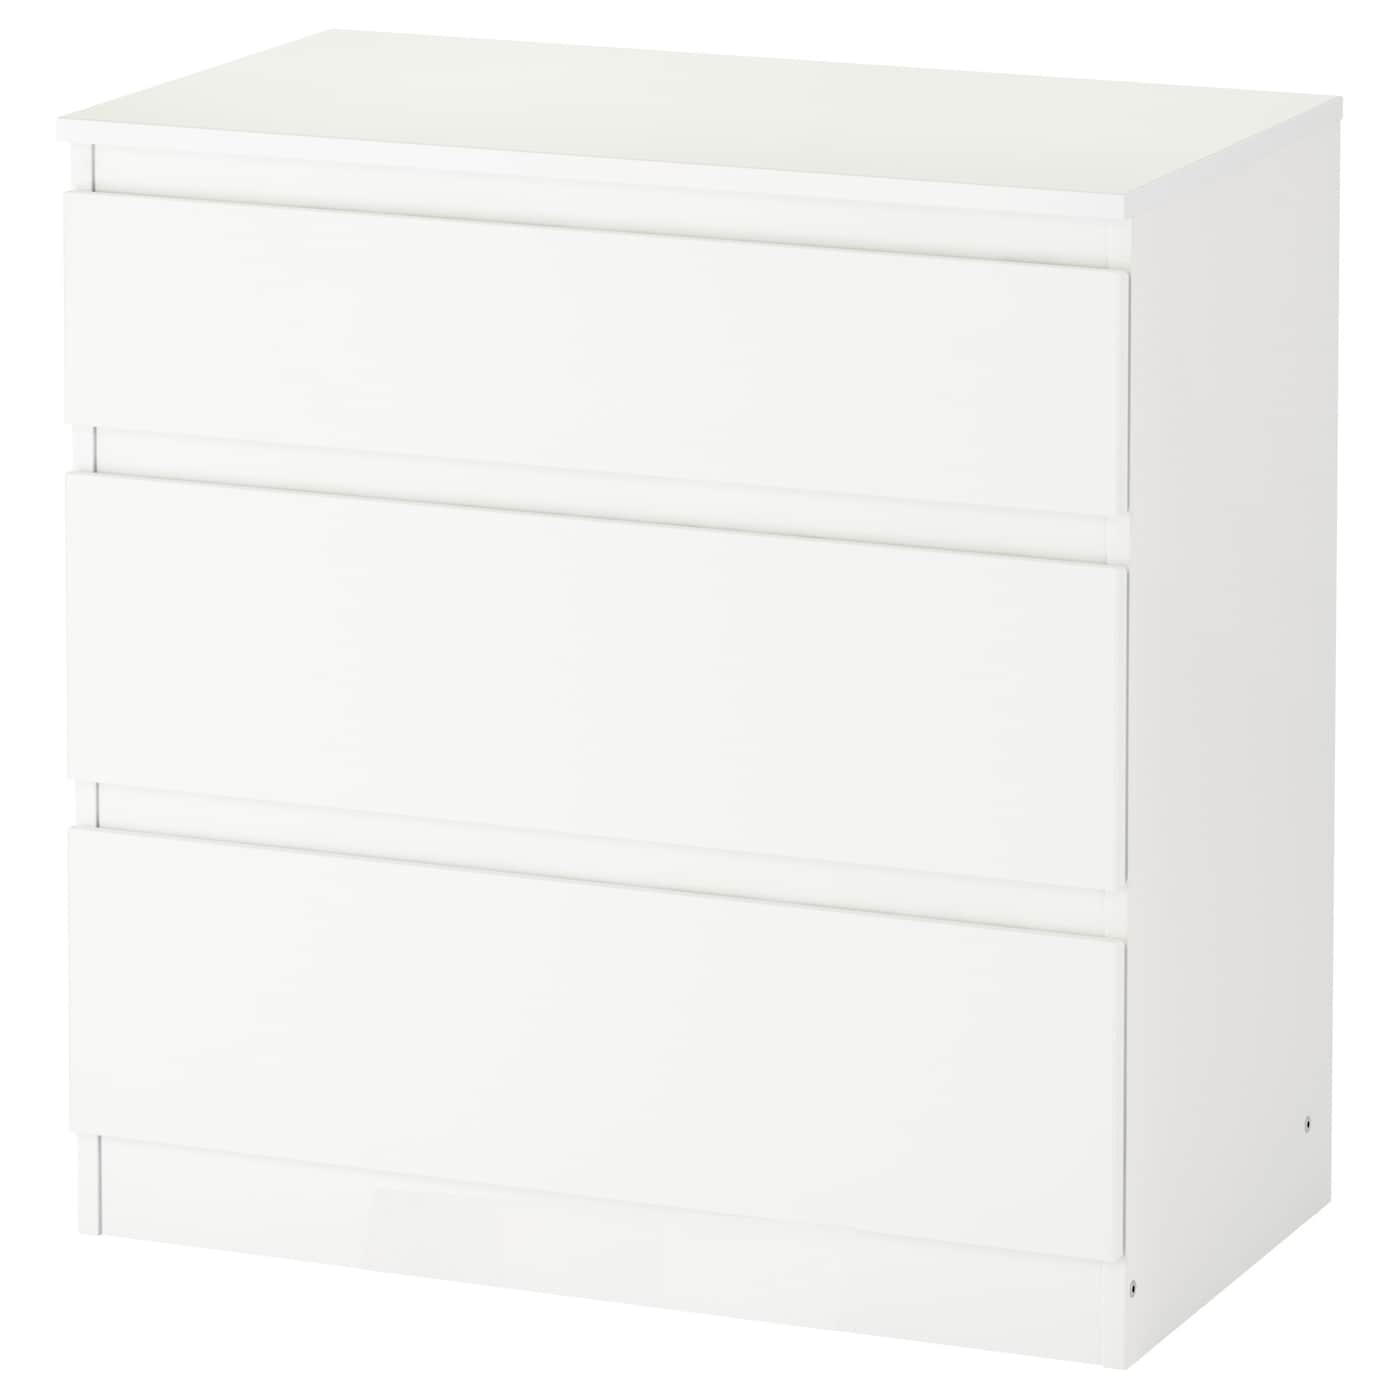 #6D6D5E KULLEN Chest Of 3 Drawers White 70x72 Cm IKEA with 2000x2000 px of Brand New Ikea 3 Drawer Dresser White 20002000 pic @ avoidforclosure.info